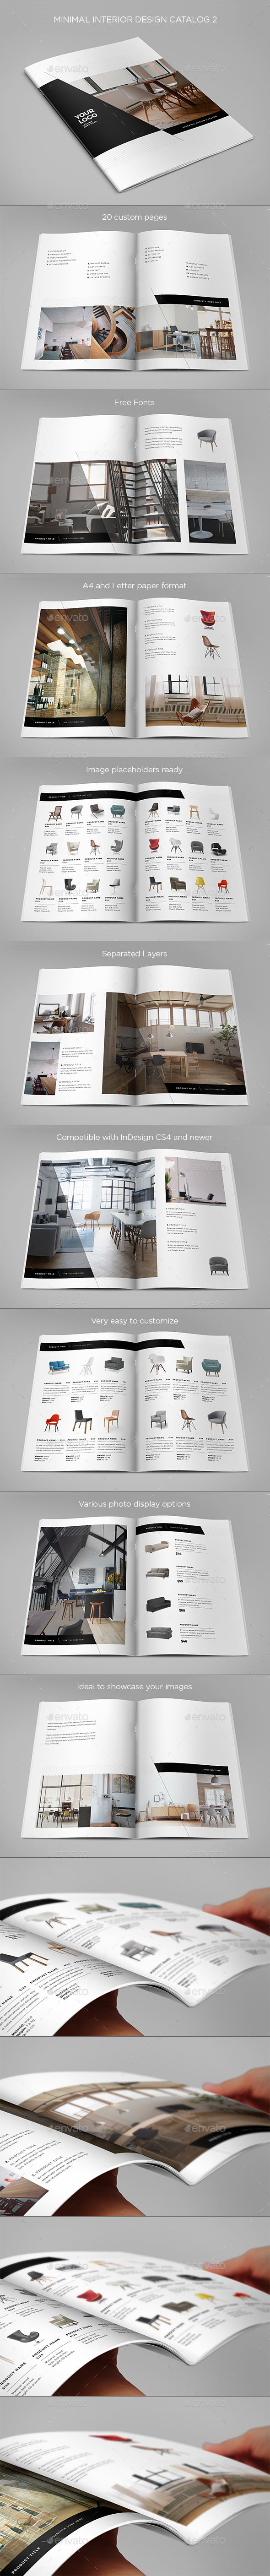 Minimal Interior Design Catalog 2 - Catalogs Brochures